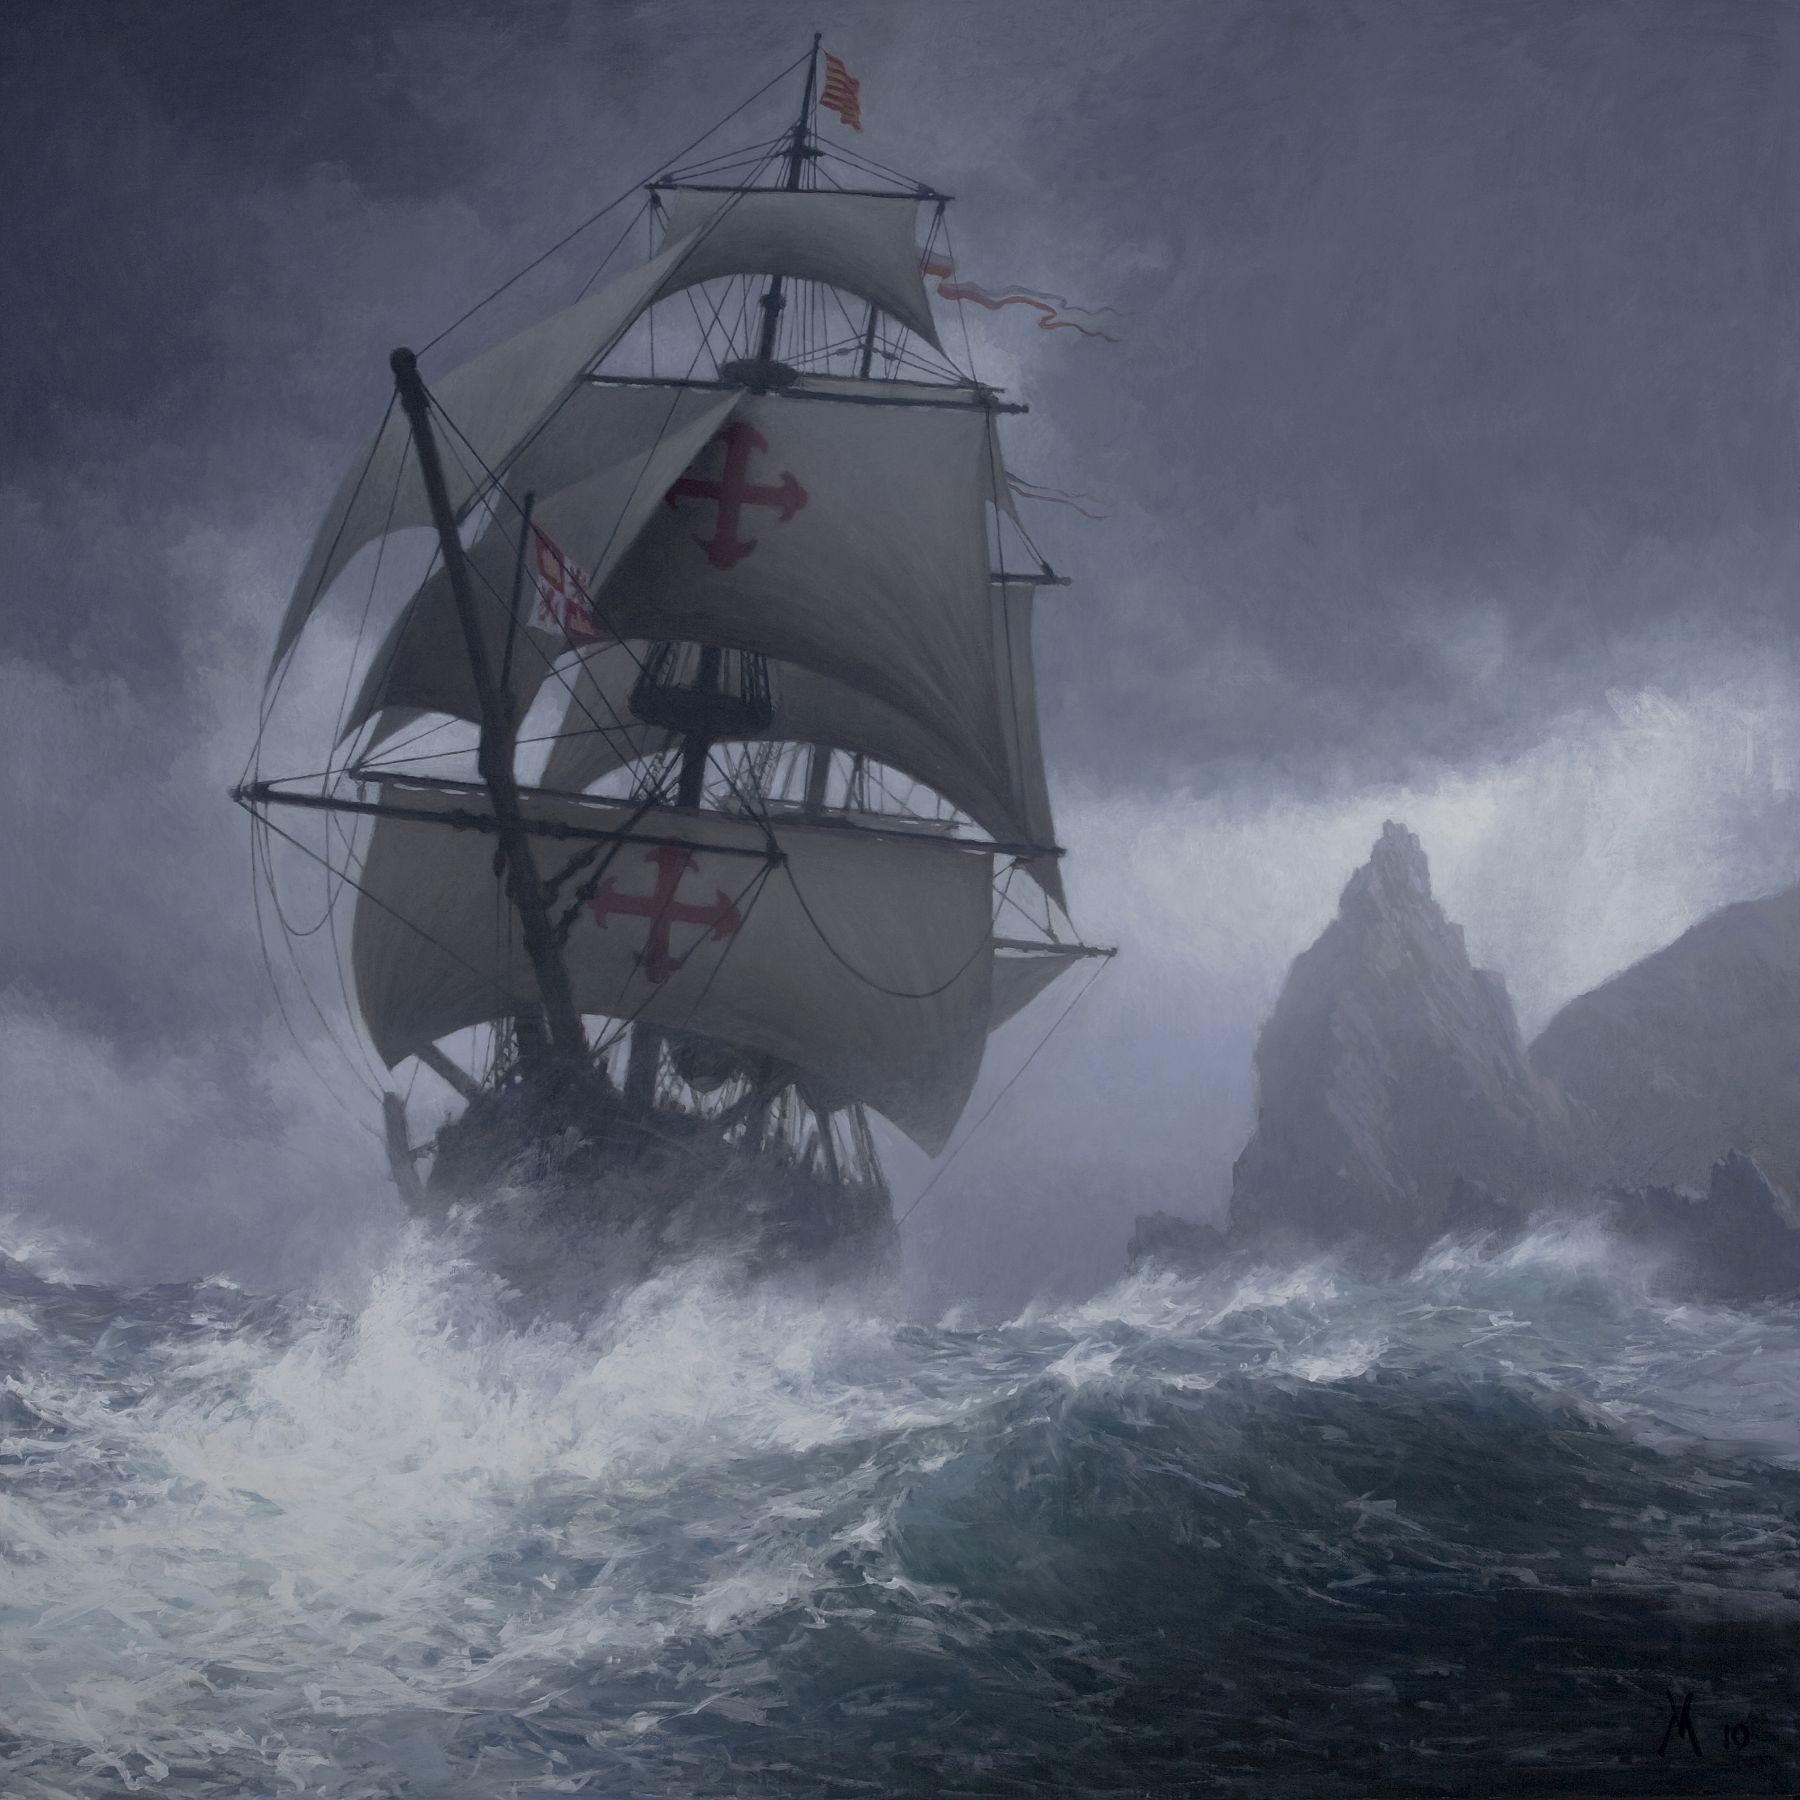 guillermo munoz vera, Cape Horn, 2010, oil on canvas mounted on panel, 59 x 59 inches